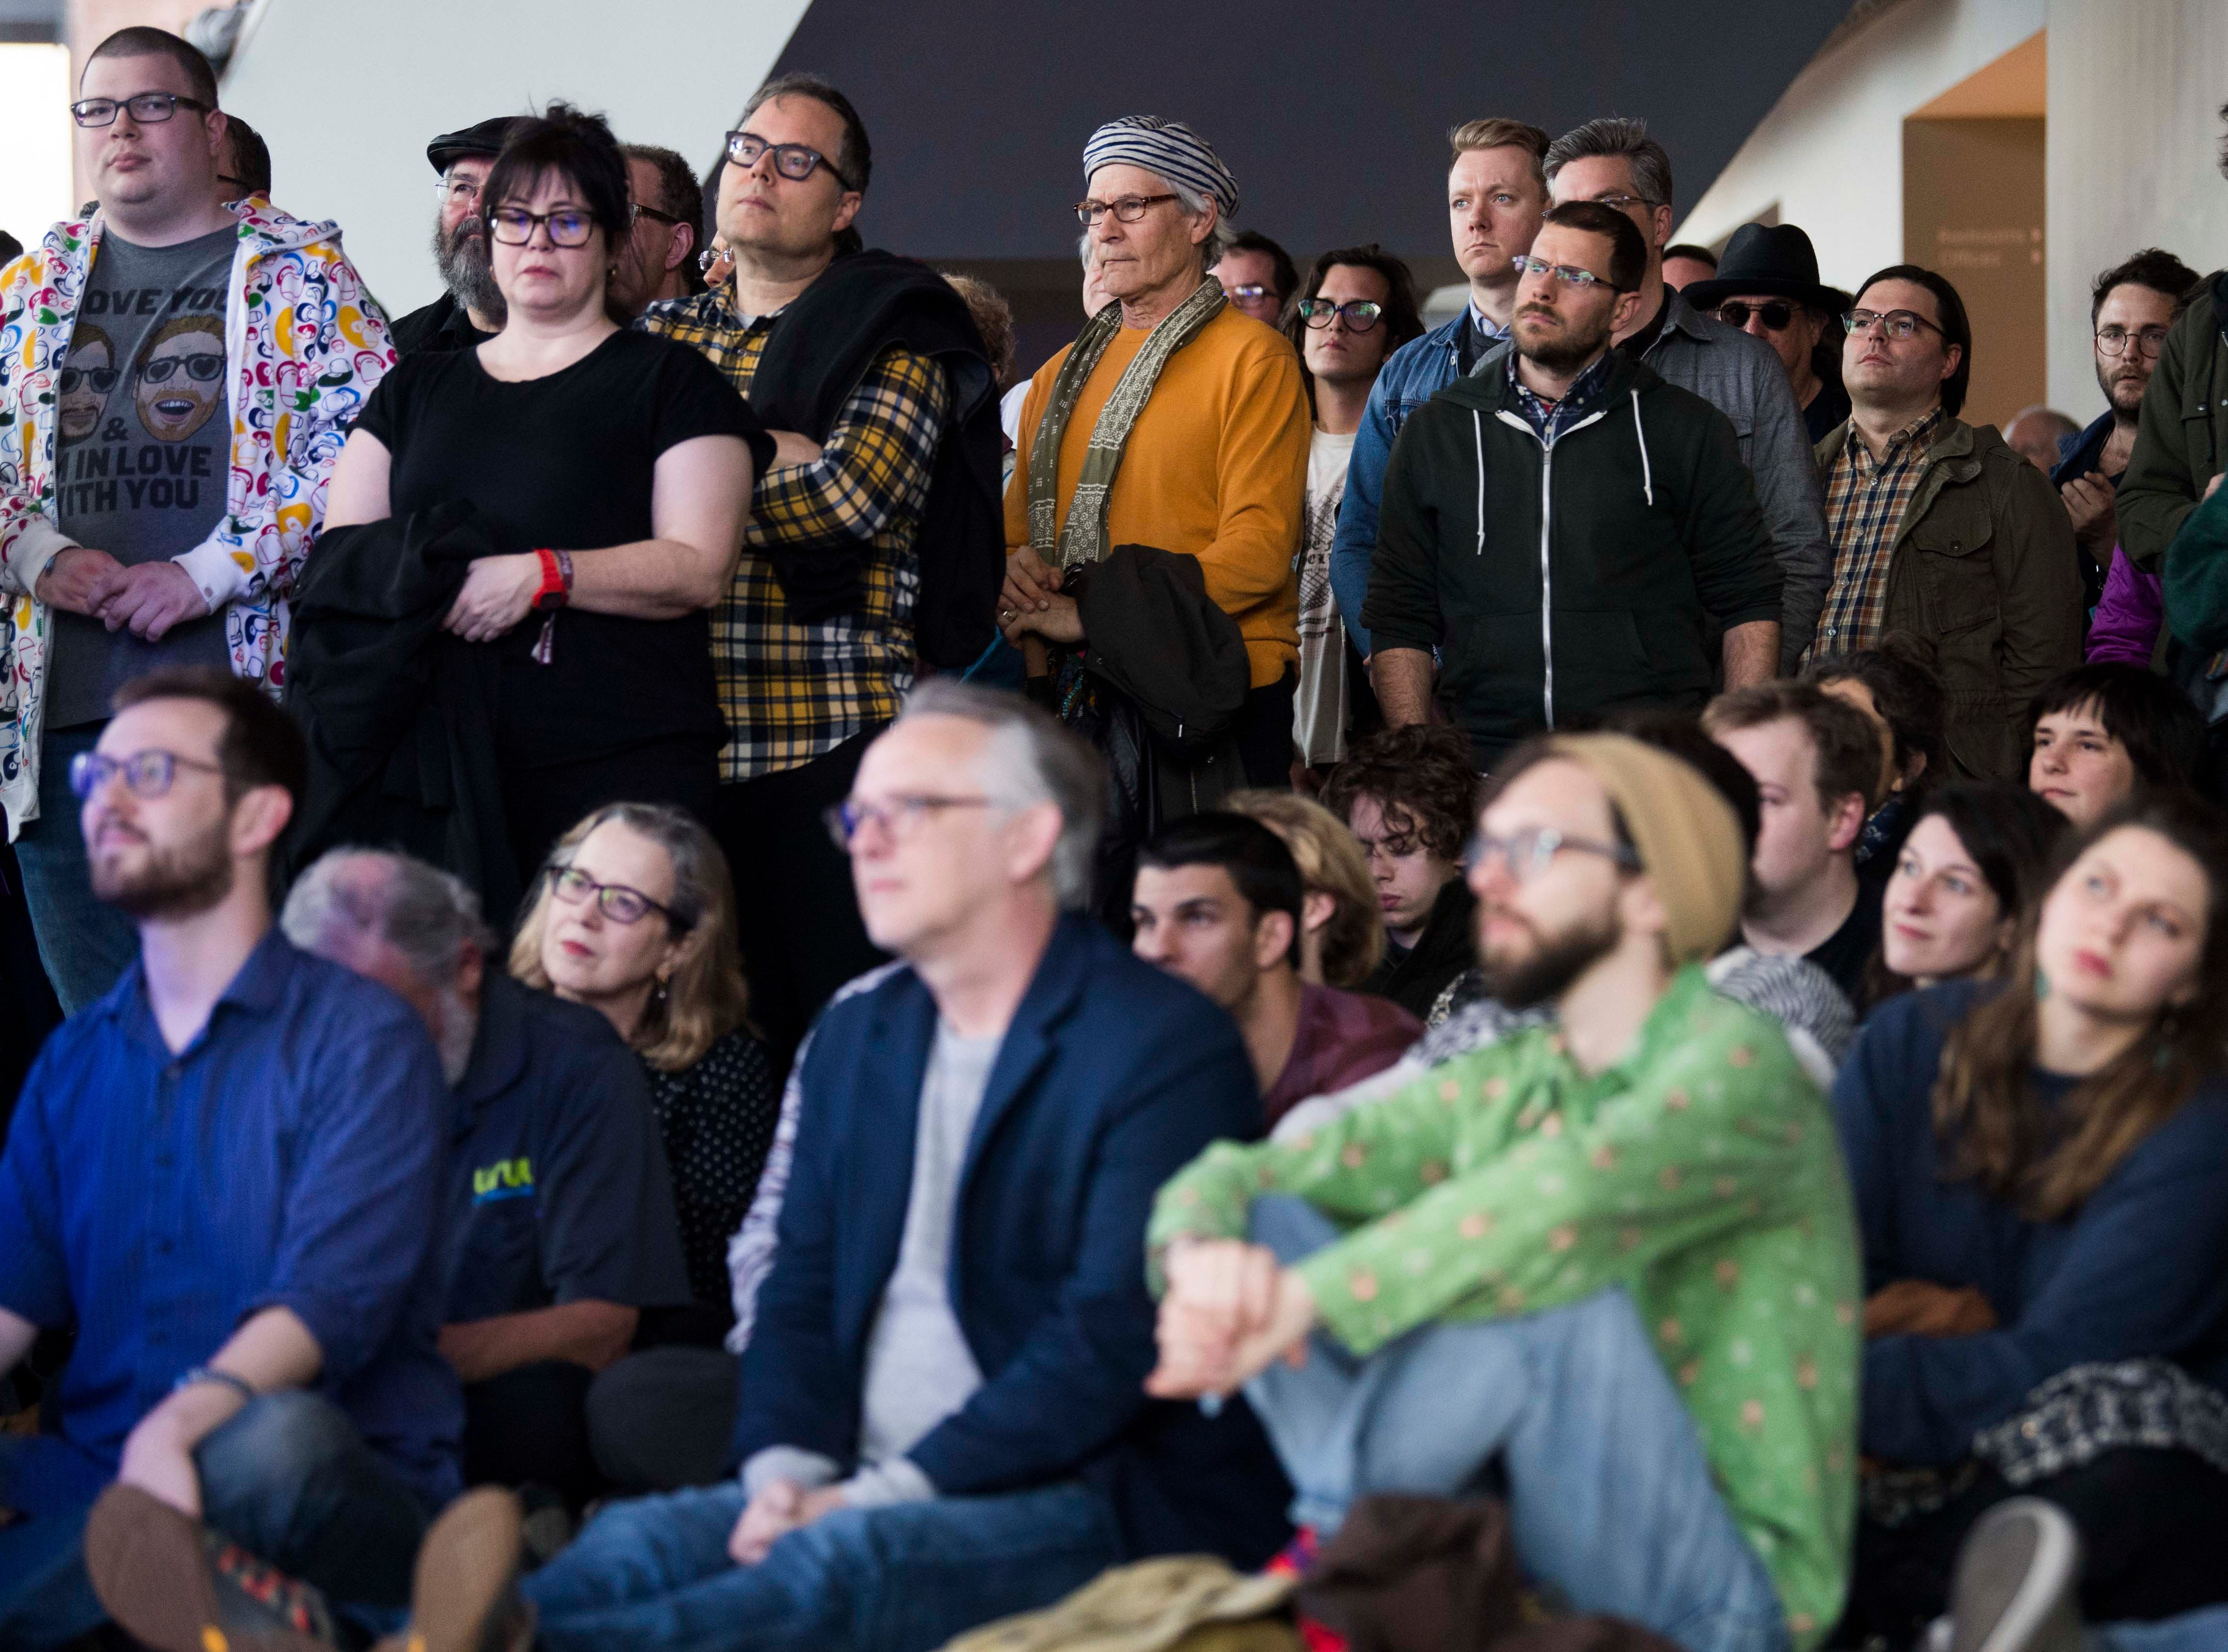 Roomful of Teeth perform in the Knoxville Museum of Art as Big Ears Festival attendees listen, in Knoxville Thursday, March 21, 2019.